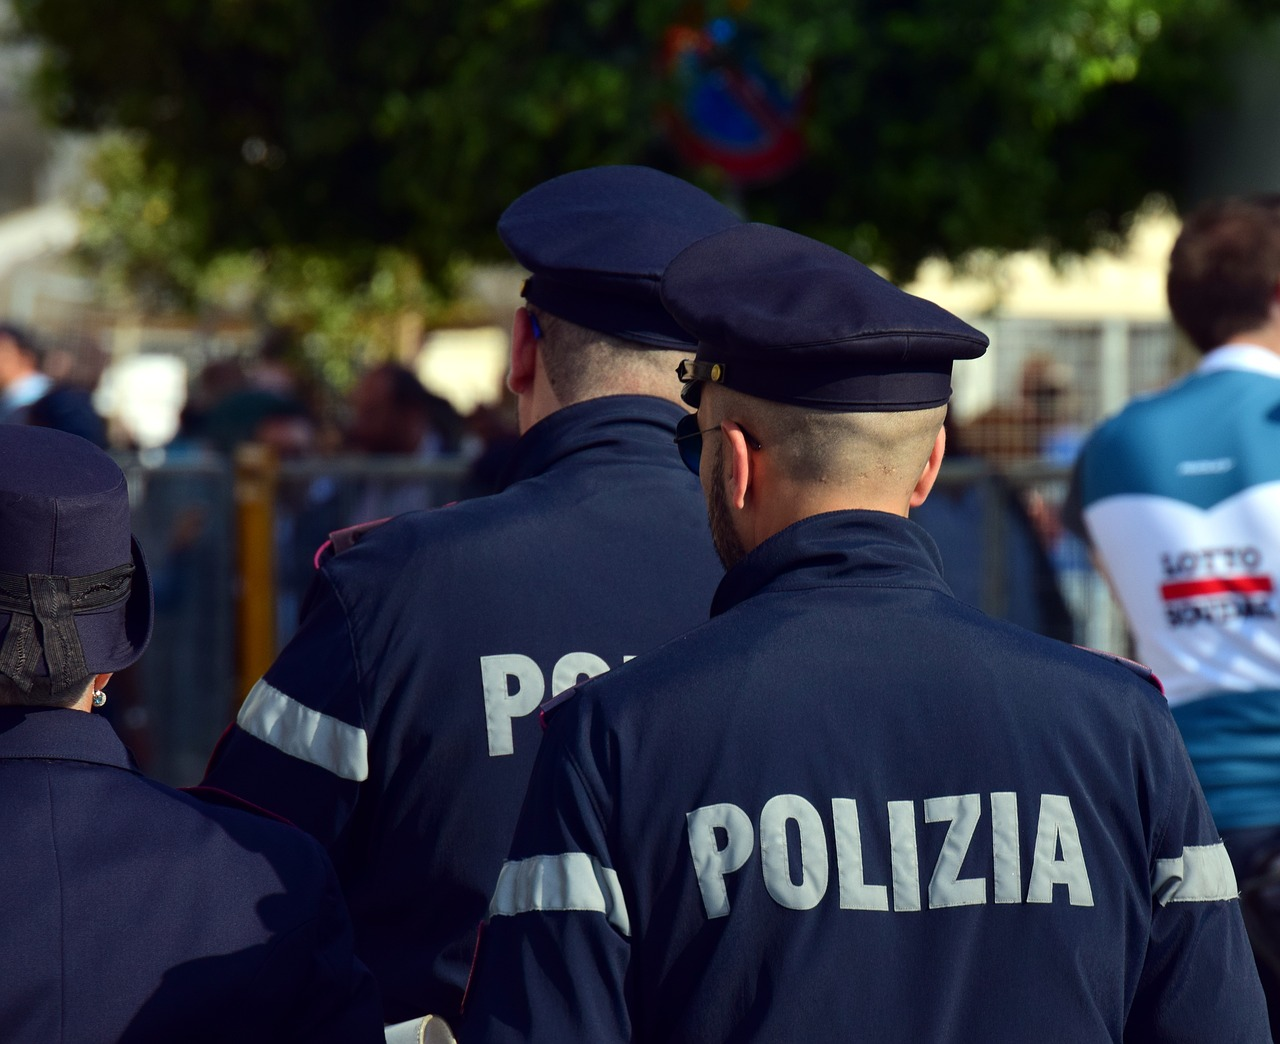 Italy police arrest Russian official, Italian navy captain in spying case